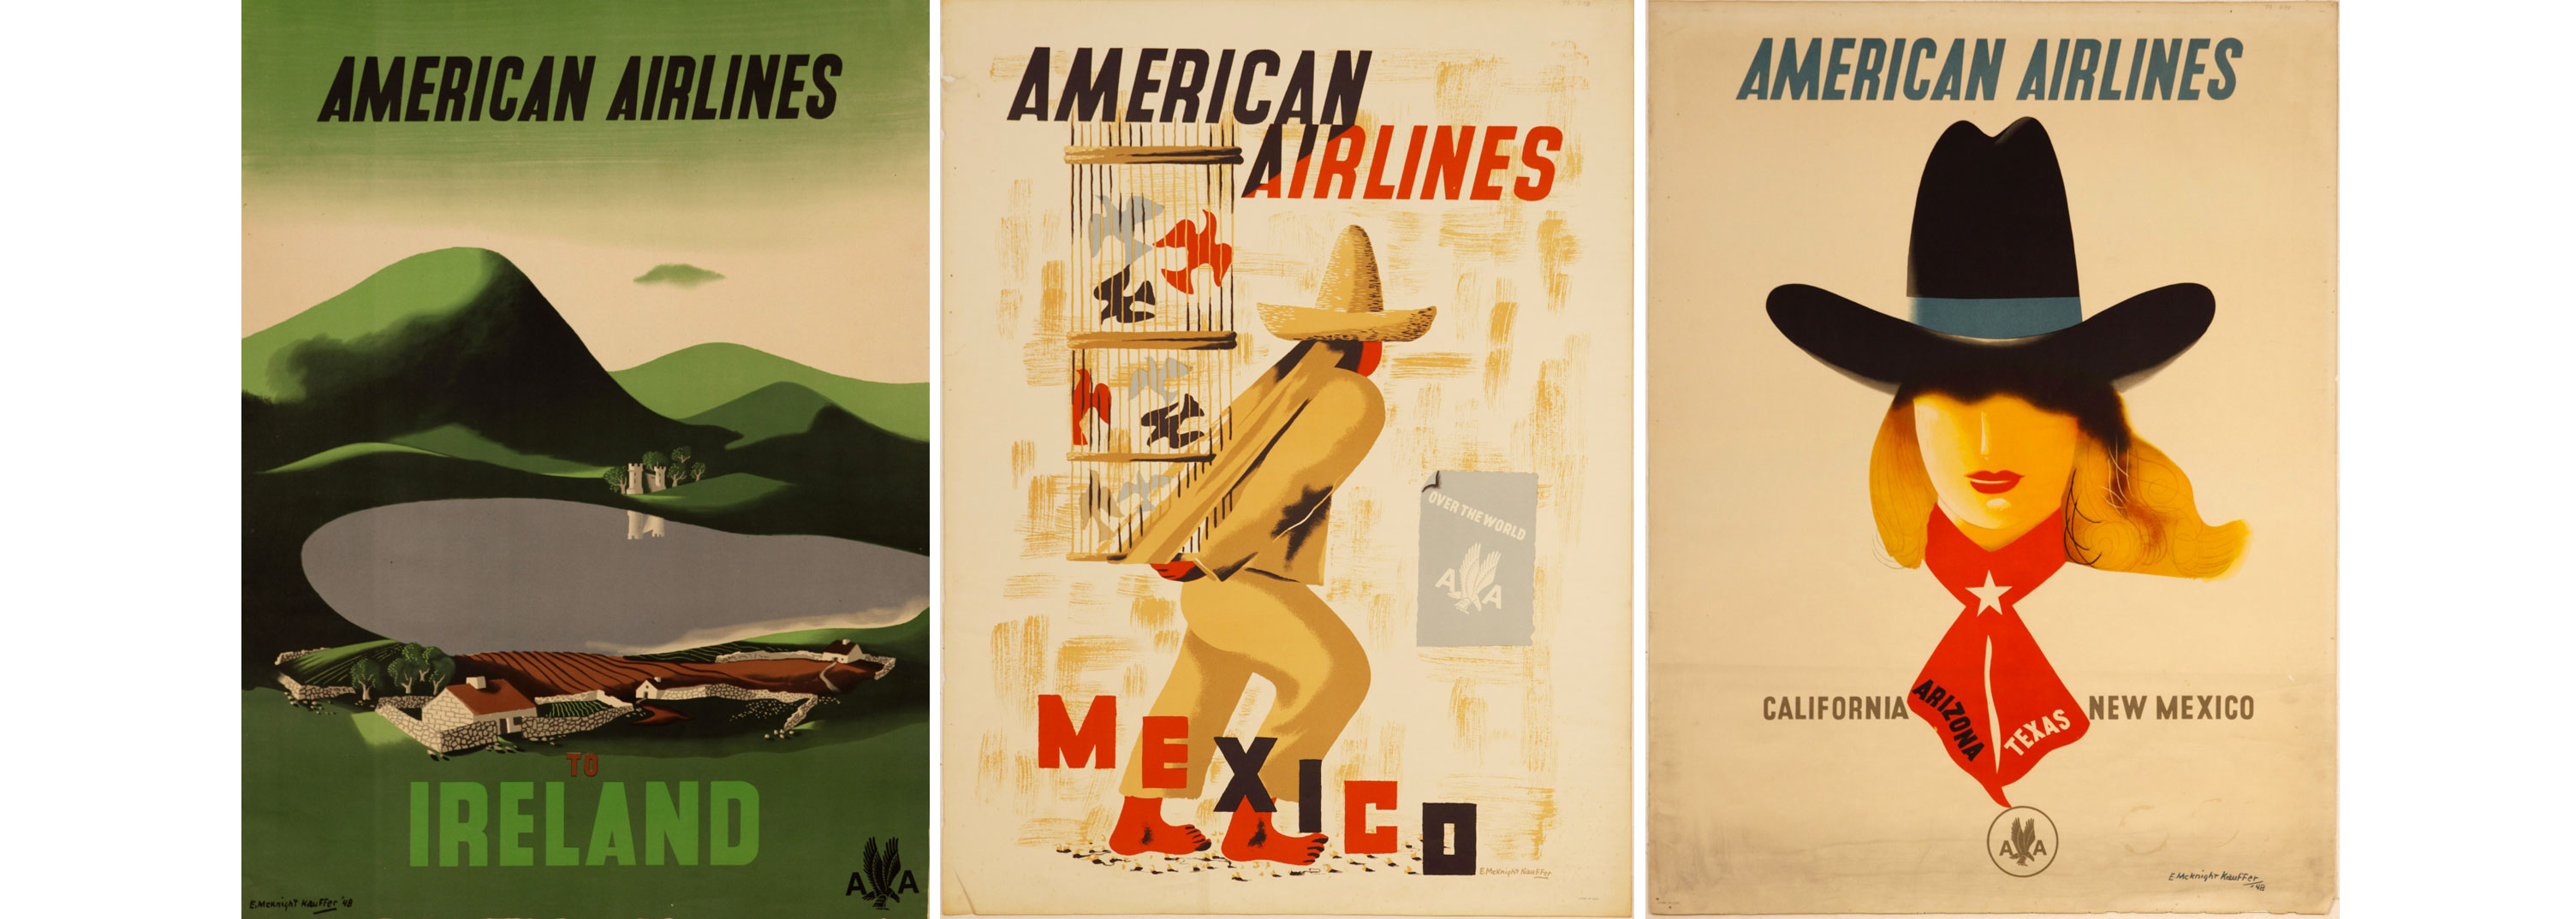 Edward-McKnight-Kauffer-US-affiches-american-airlines-02